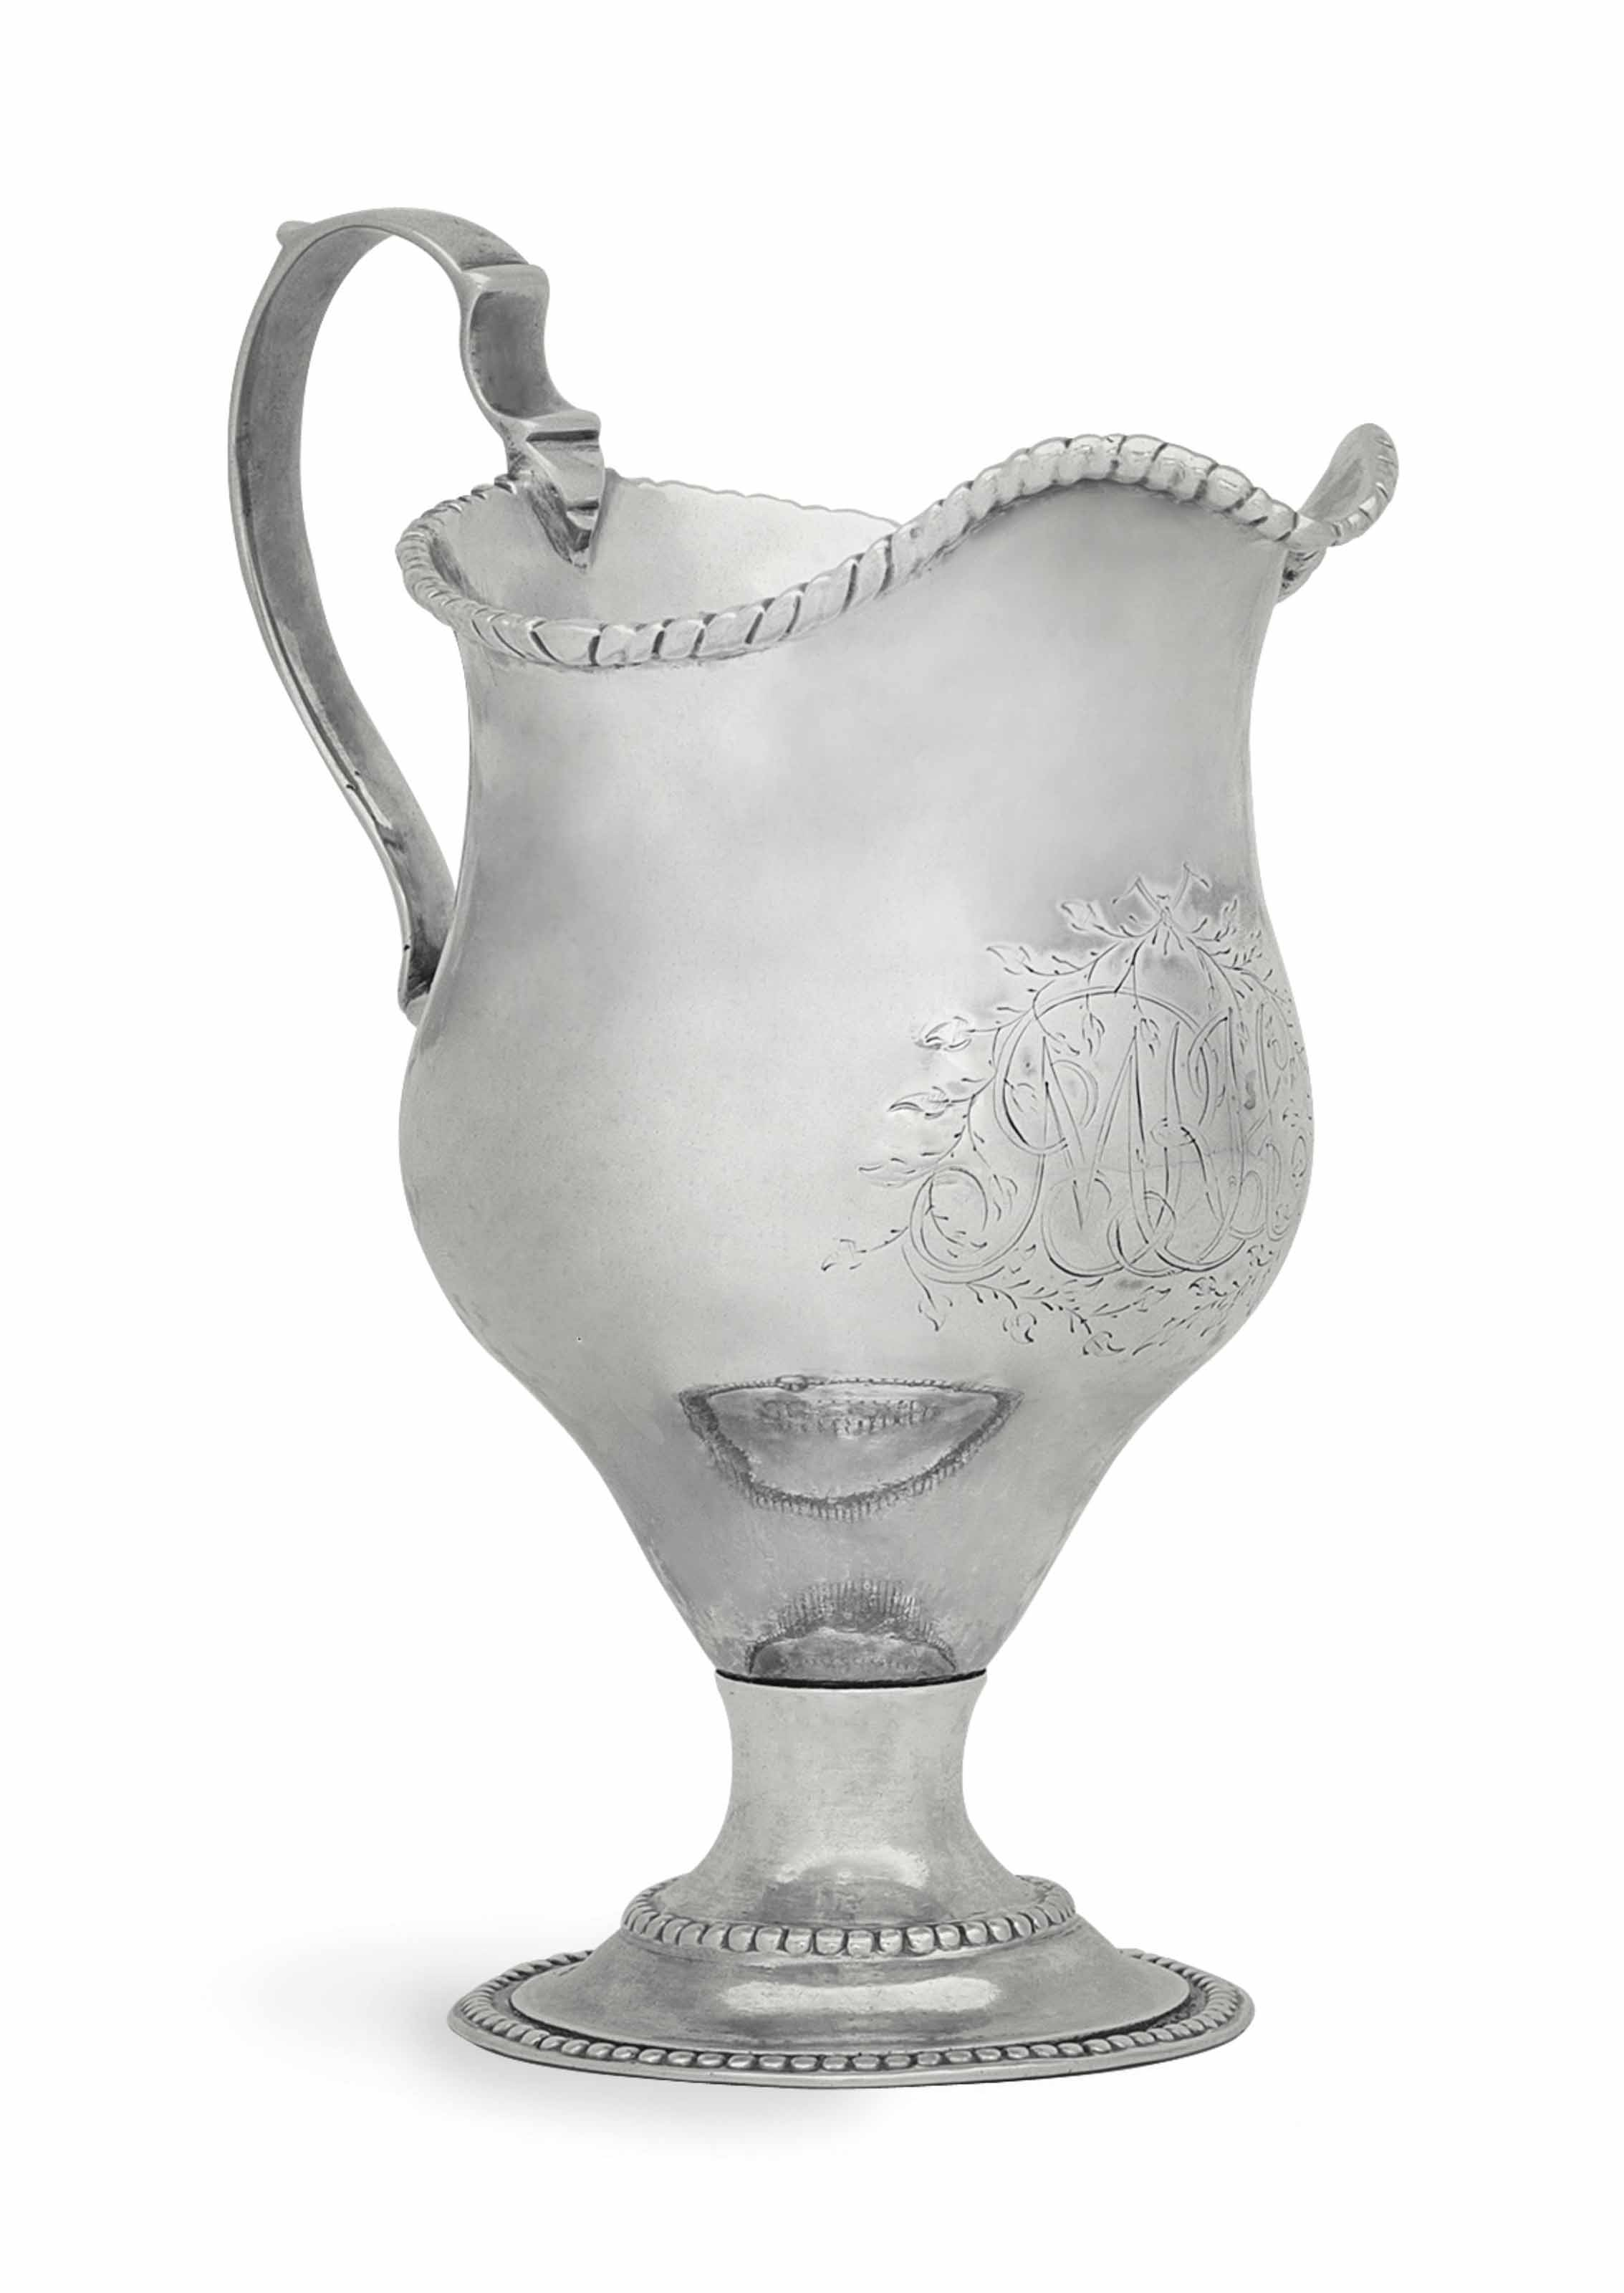 A SILVER CREAM JUG MADE FOR MOSES MICHAEL HAYS